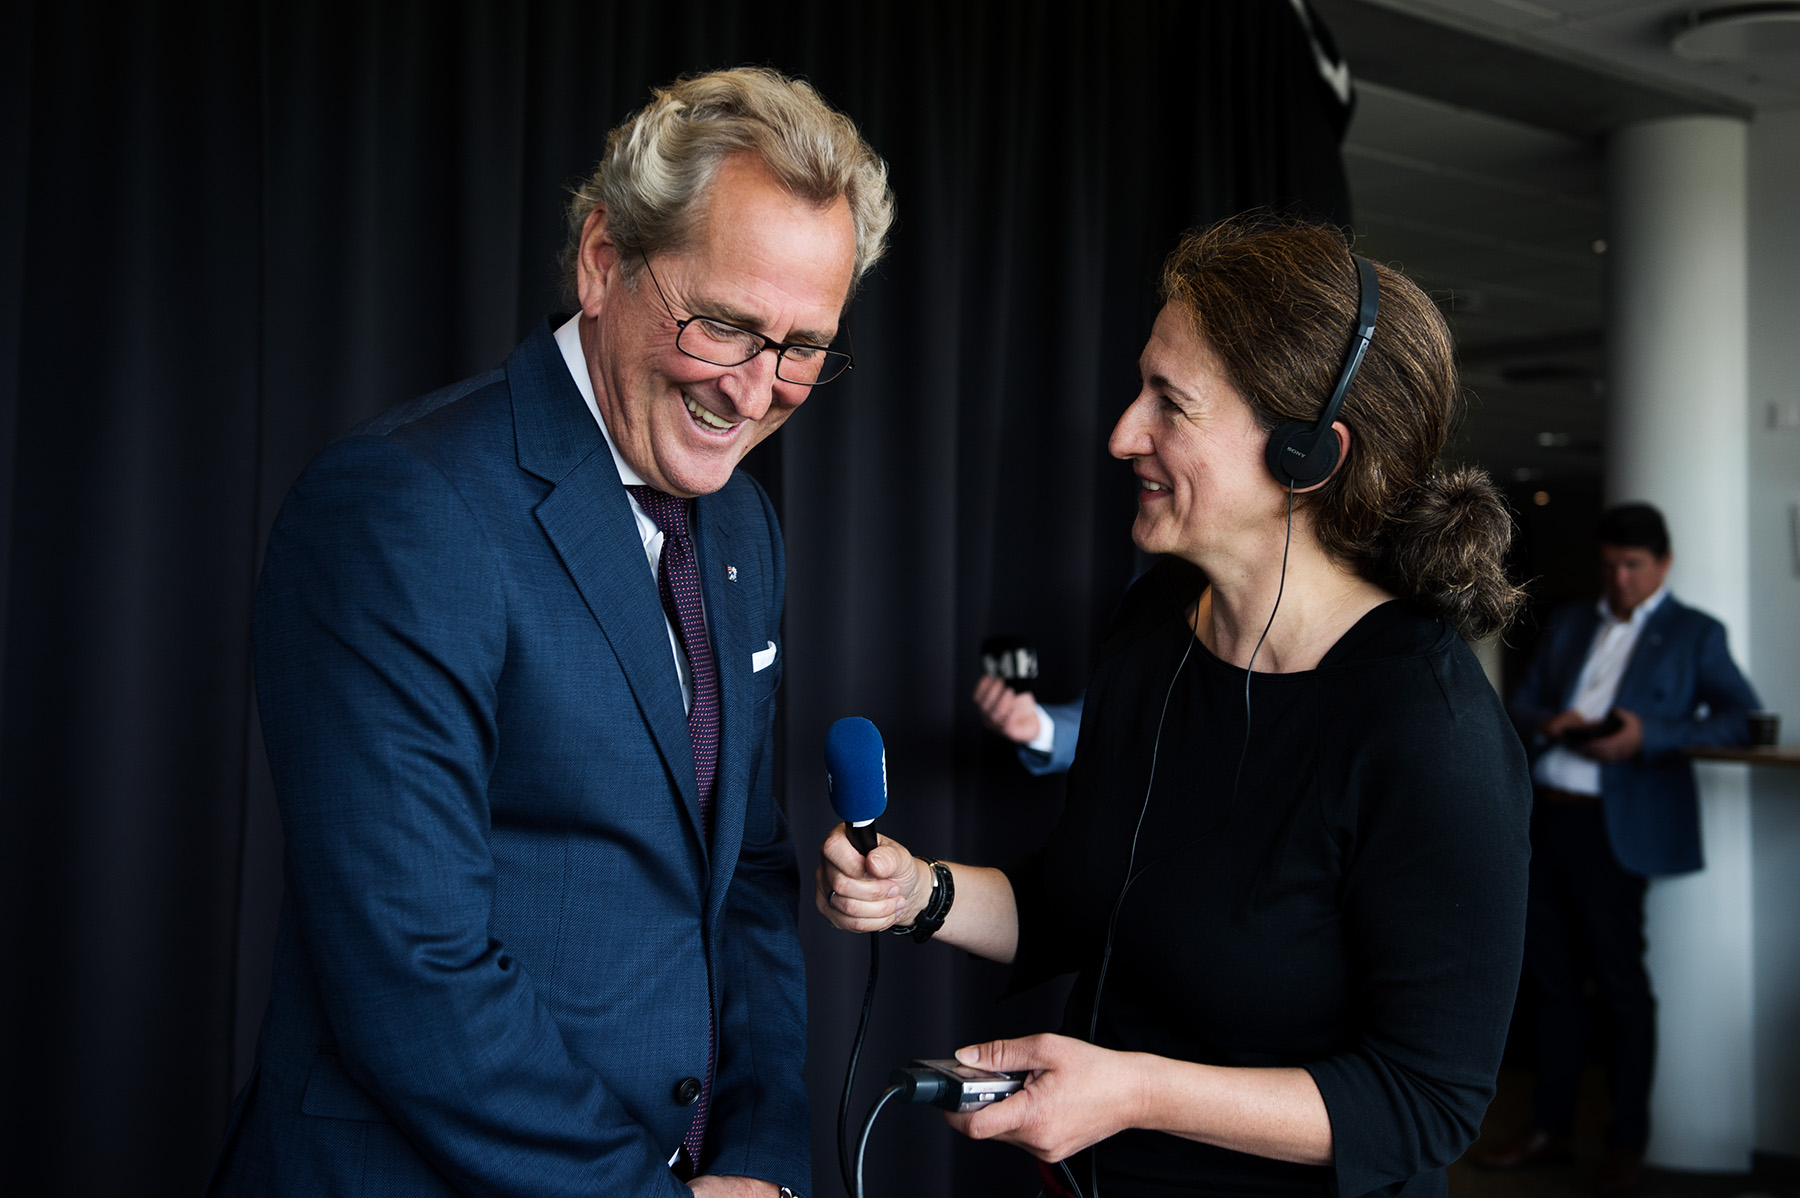 Mareike Timm | Photo Journalist - Erik Hamrén is being interviewed by Deutschlandfunk-reporter Jessica Sturmberg after the press conference in Reykjavík, where he was presented as the new trainer of the Icelandic national football team. For Deutschlandfunk, 2018.